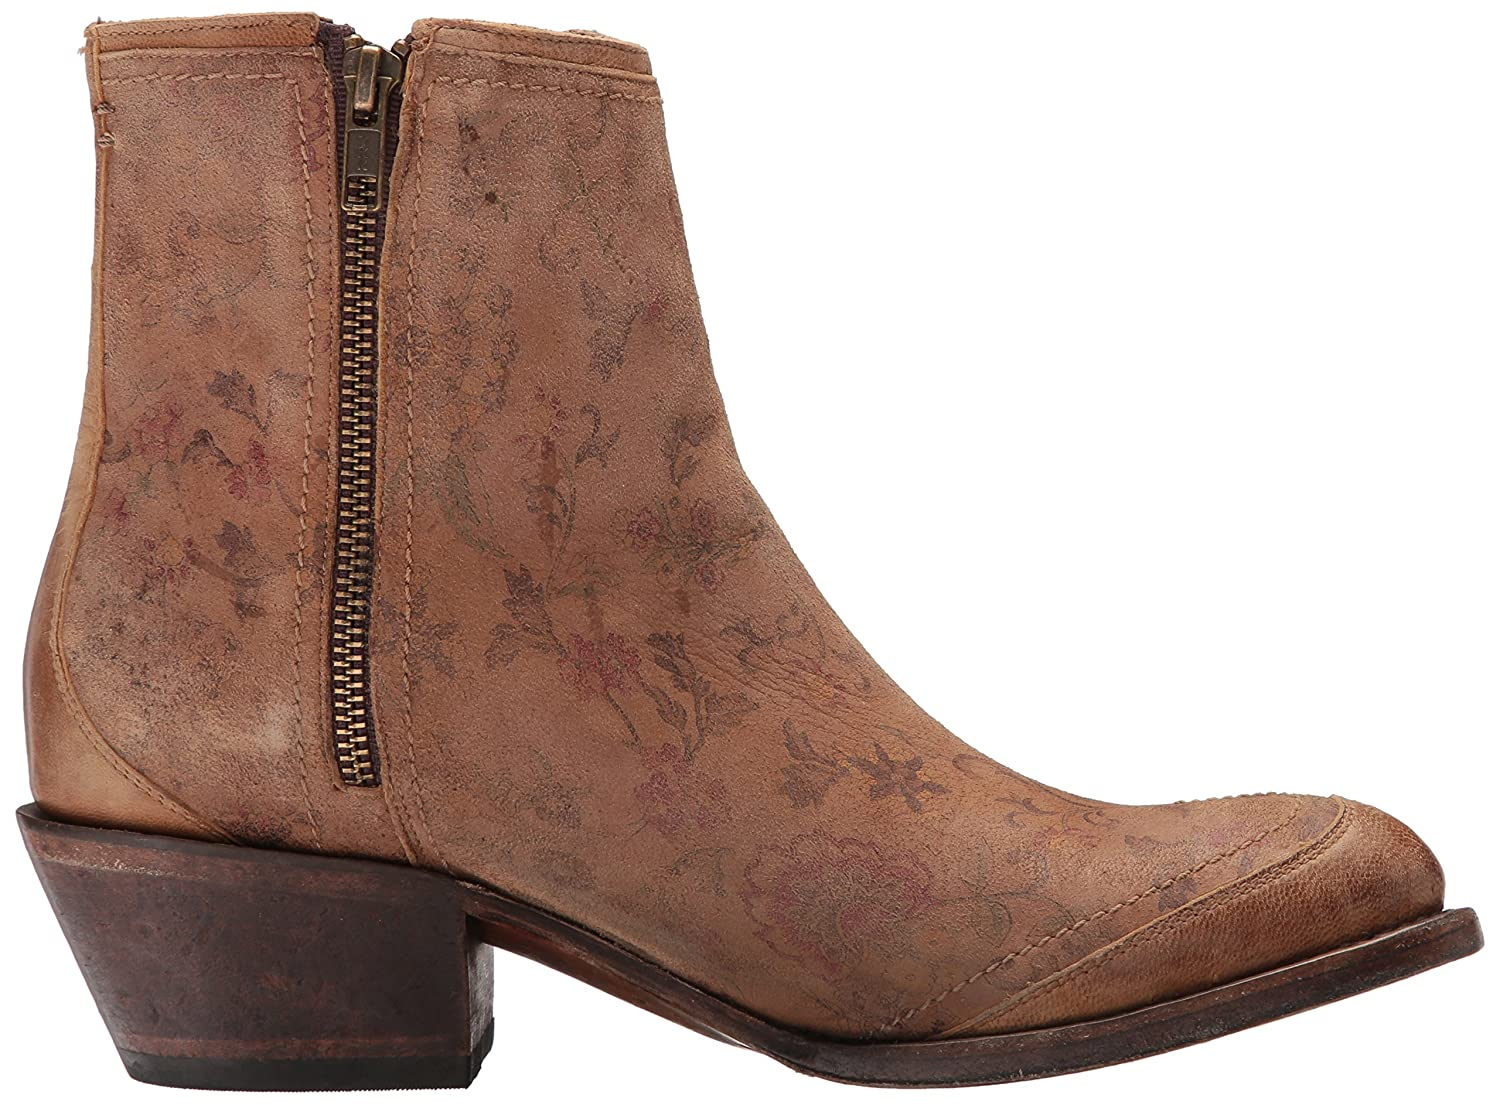 Lucchese Bootmaker Women's Gia Ankle Boot B0752YY9NW 9 B(M) US|Natural Printed